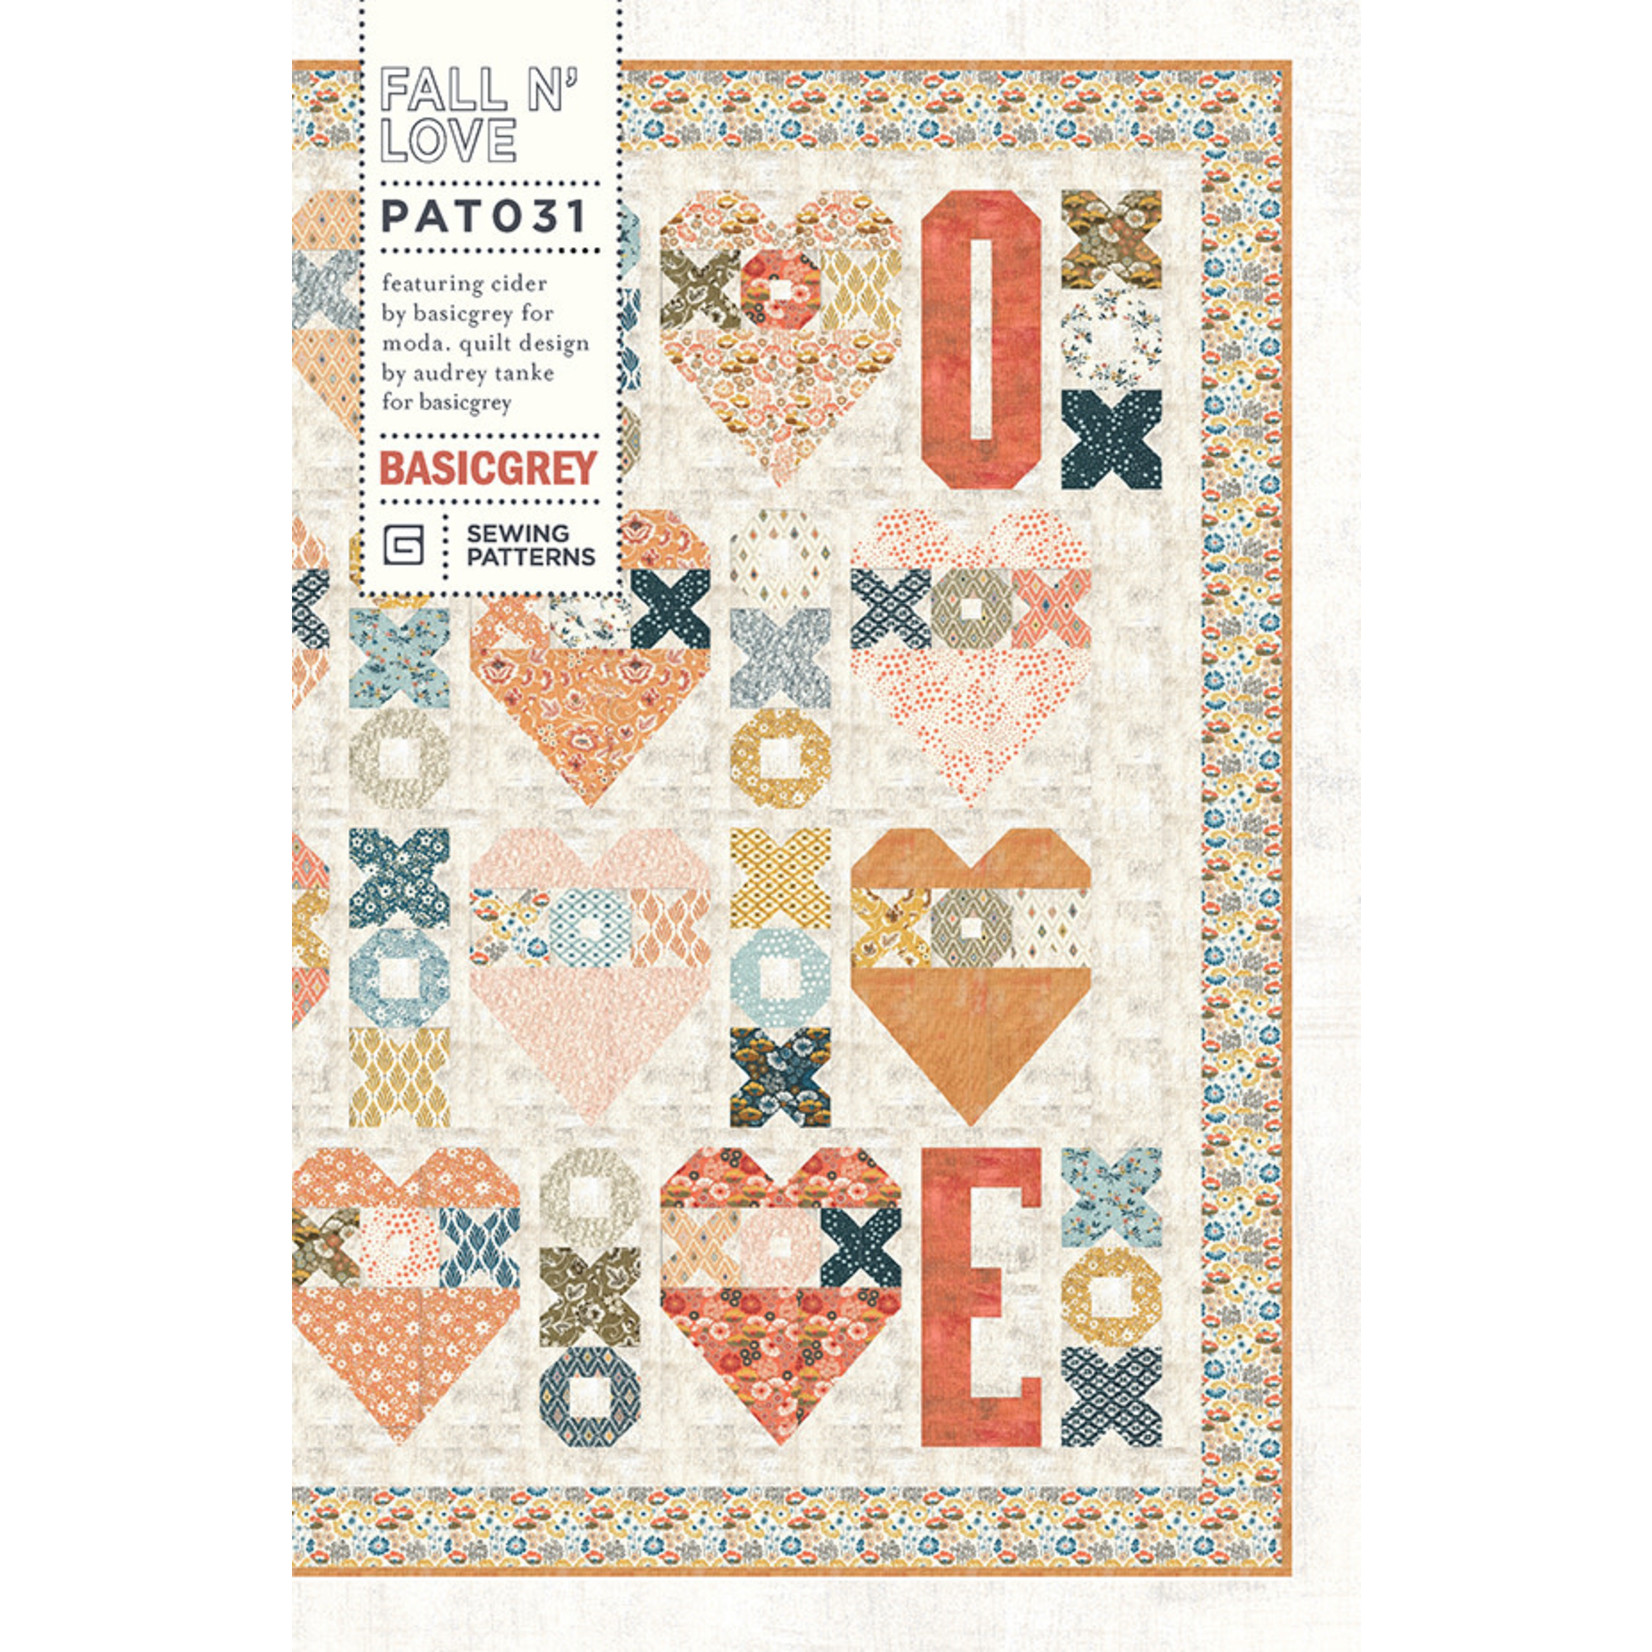 Moda Fall N' Love Quilt Kit- Binding Included, Backing Not Included